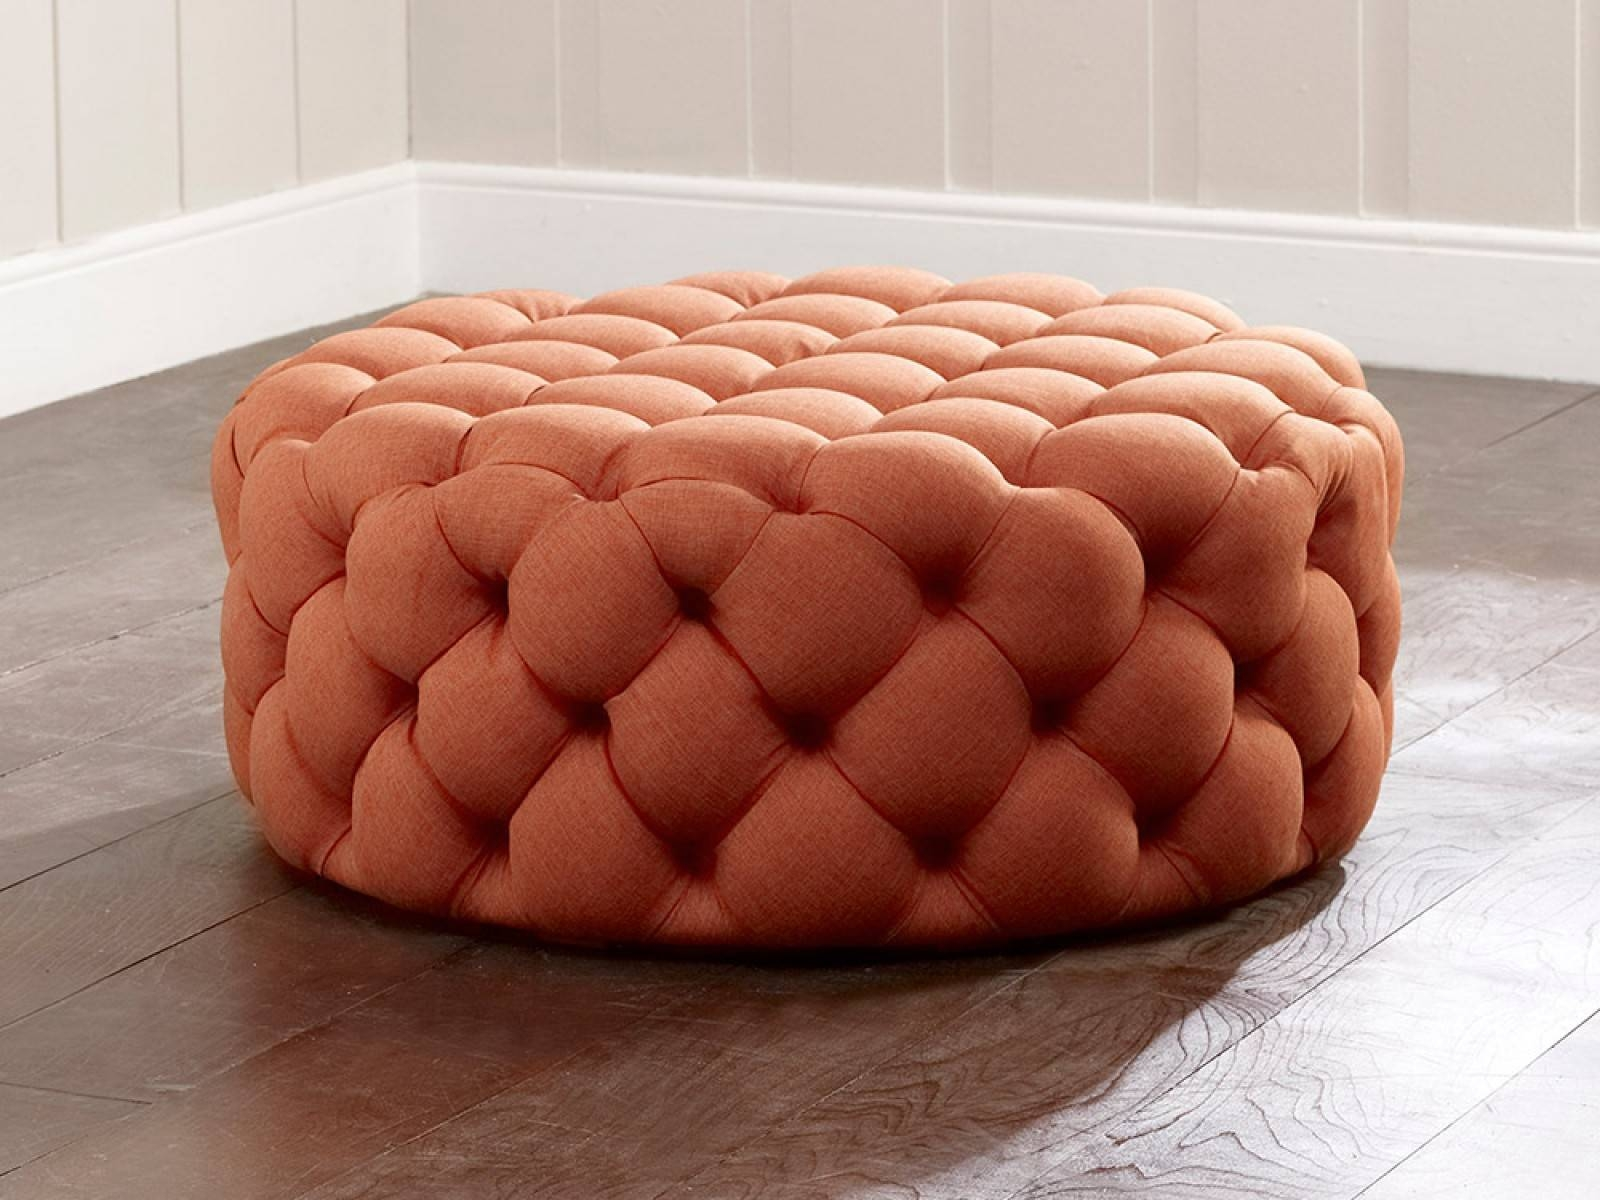 Charlotte Upholstered Footstool | Living It Up with regard to Upholstered Footstools (Image 3 of 30)